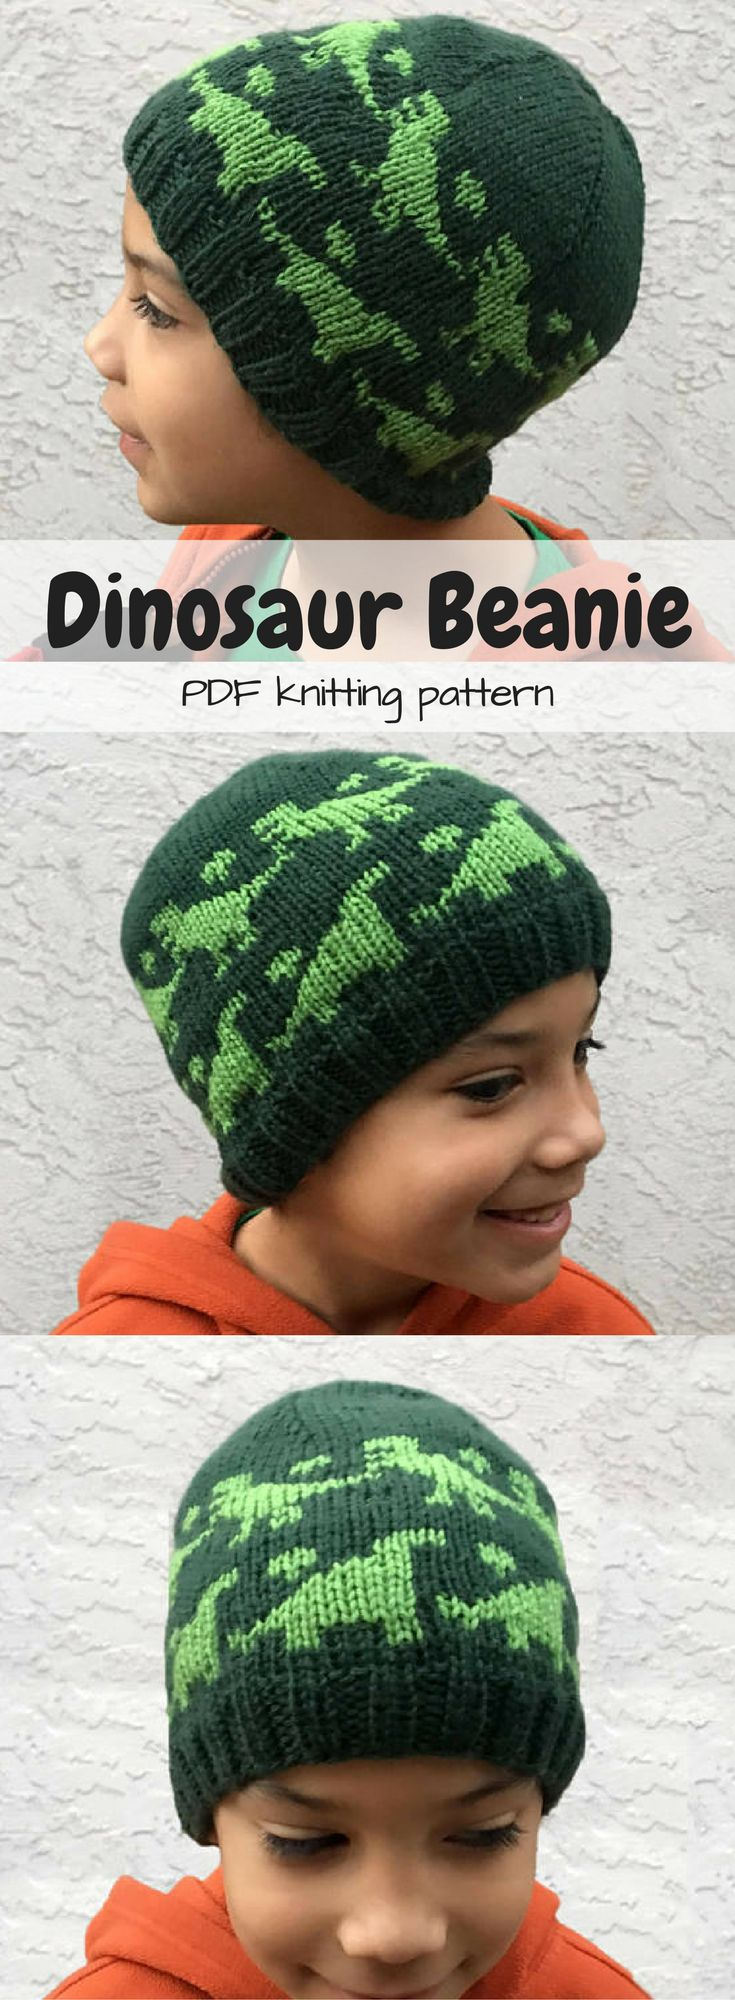 """Dinosaur Beanie pdf knitting pattern """"Rawr Beanie"""" What a cute knit hat pattern. Perfect for all those nephews! #toque #etsy #ad"""